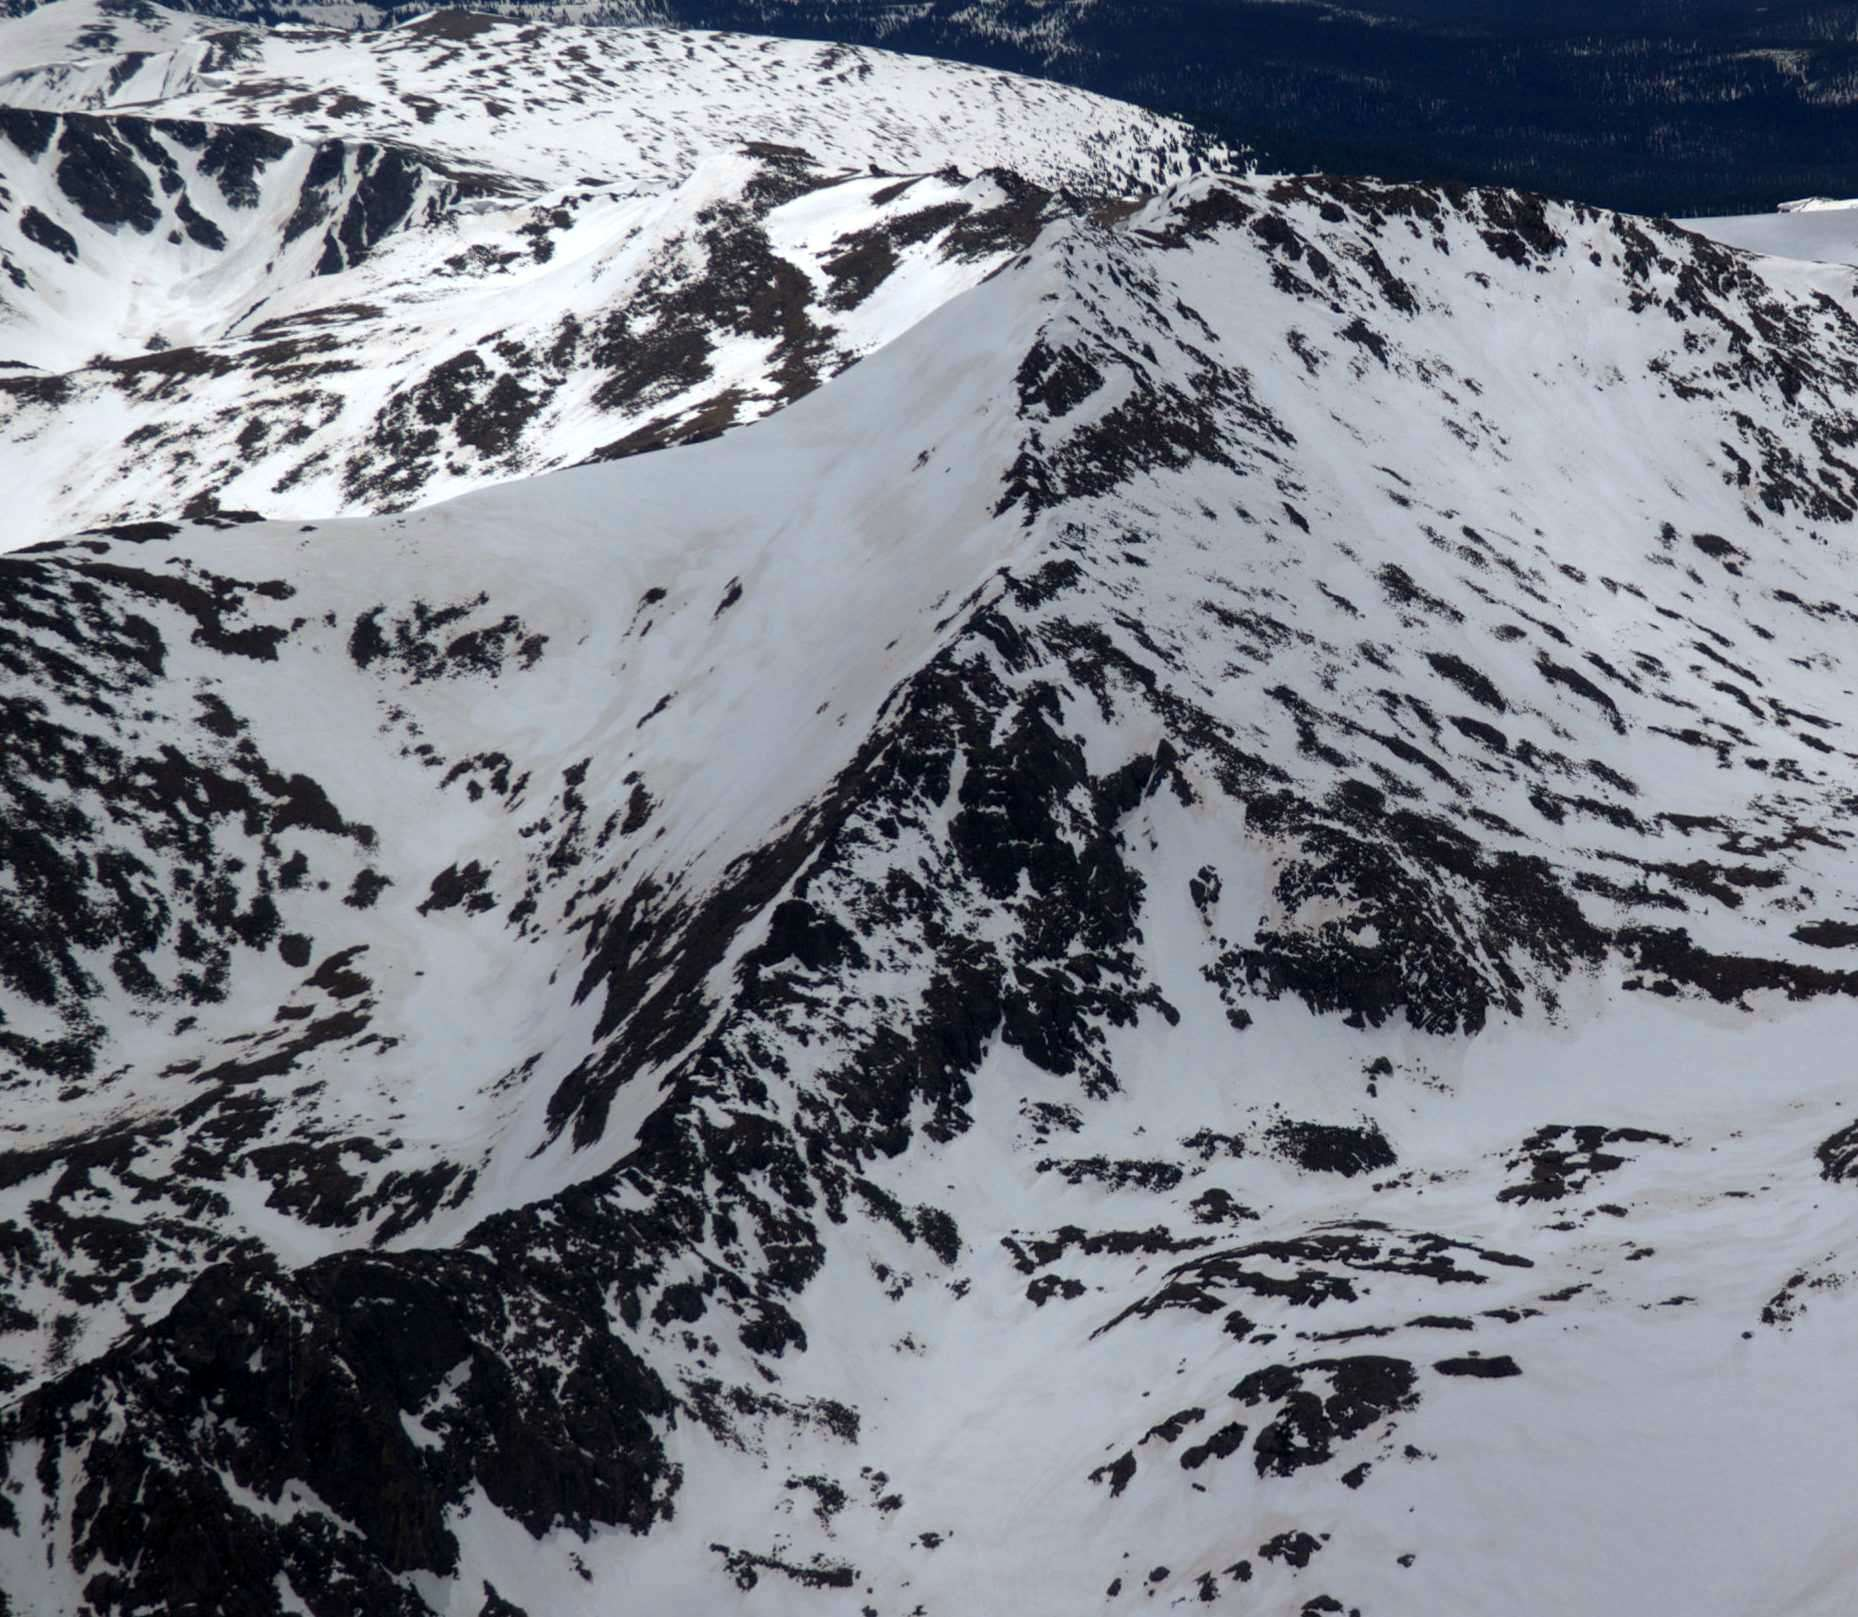 The Northeast Face of Jasper Peak.